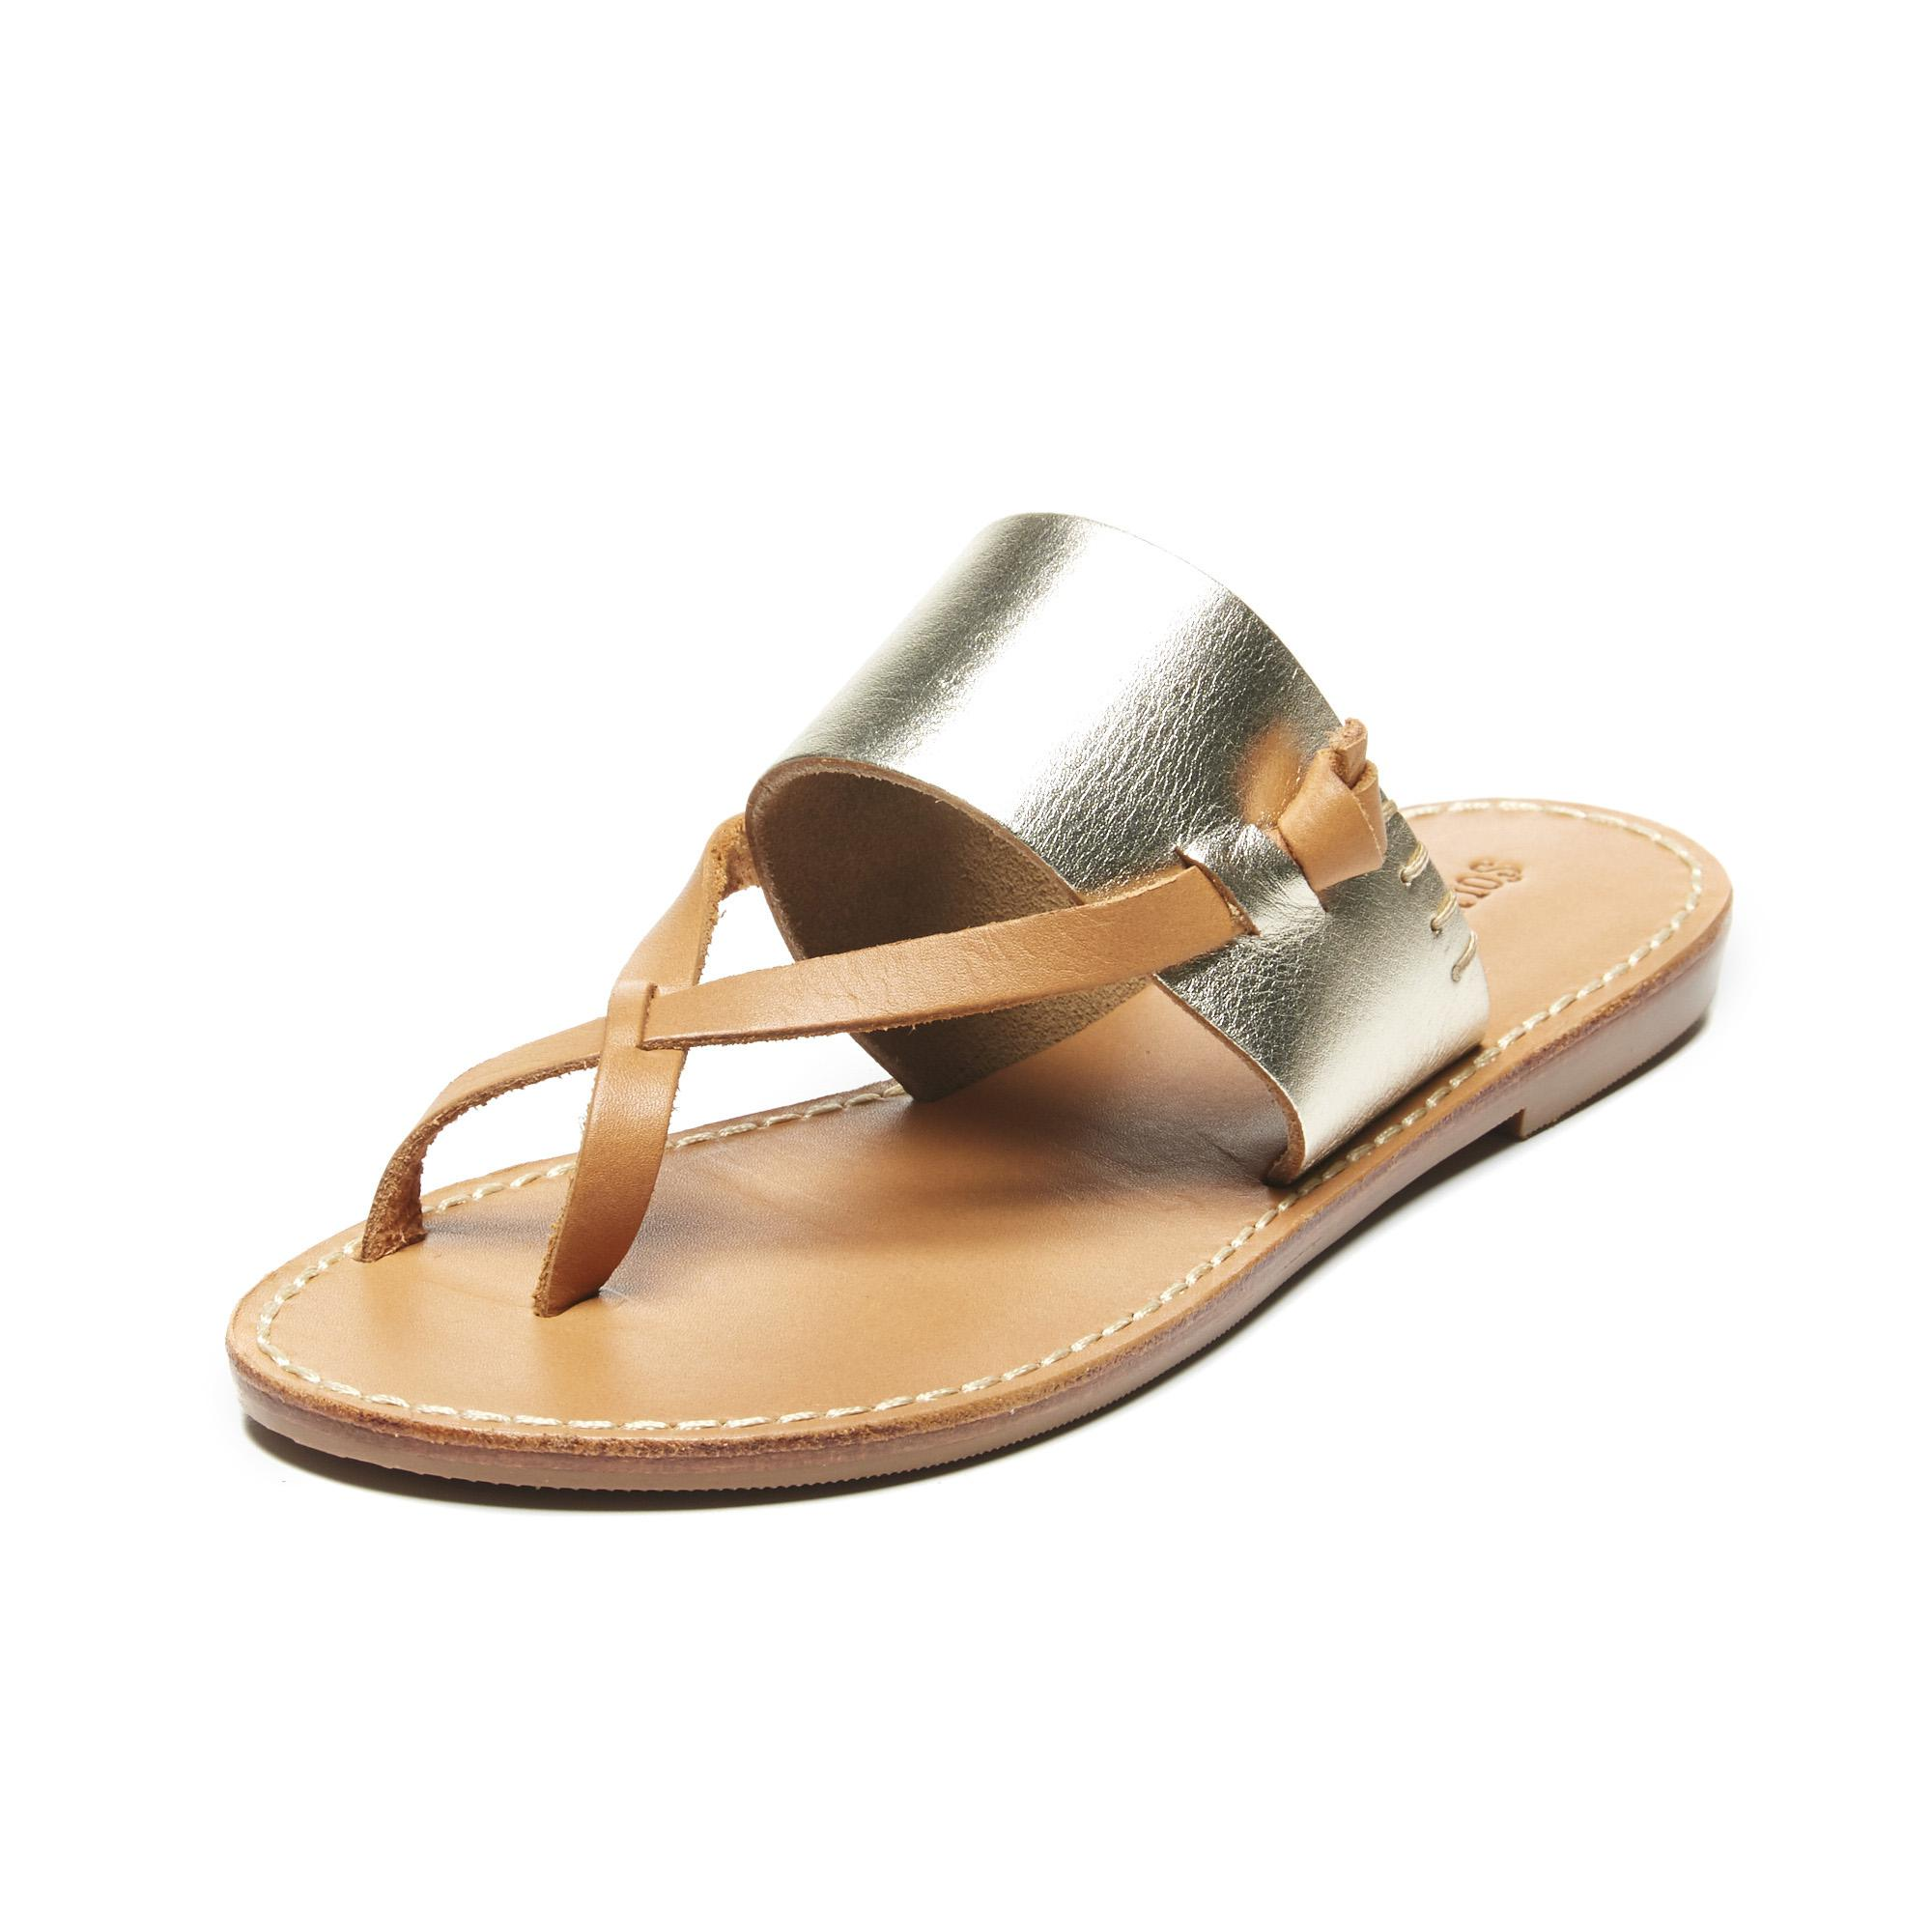 05935353fbce Lyst - Soludos Metallic Leather Slotted Thong Sandal in Metallic